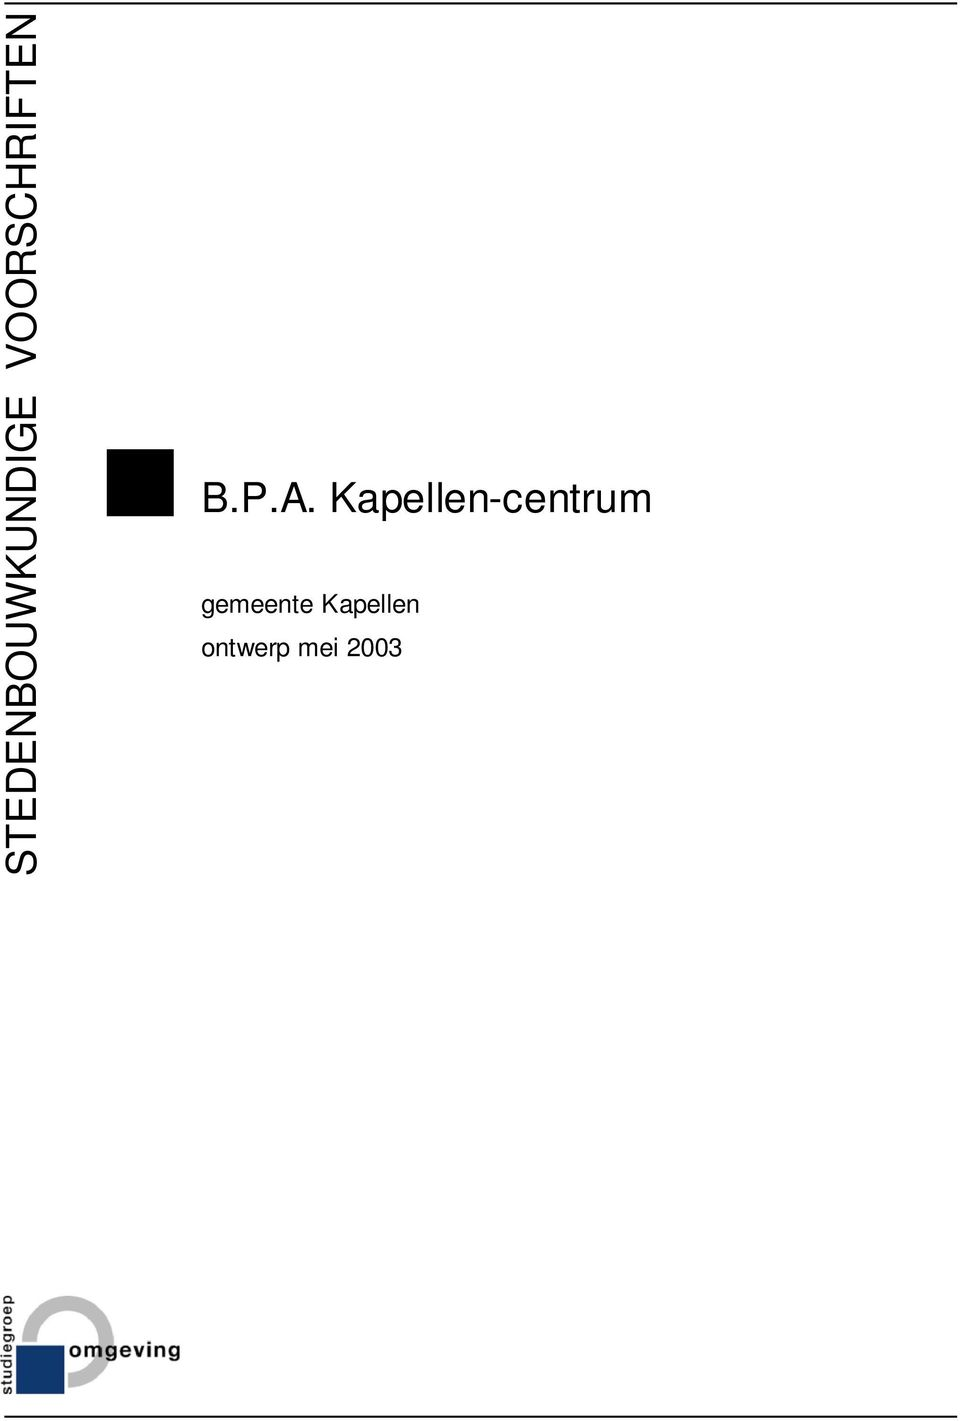 Kapellen-centrum